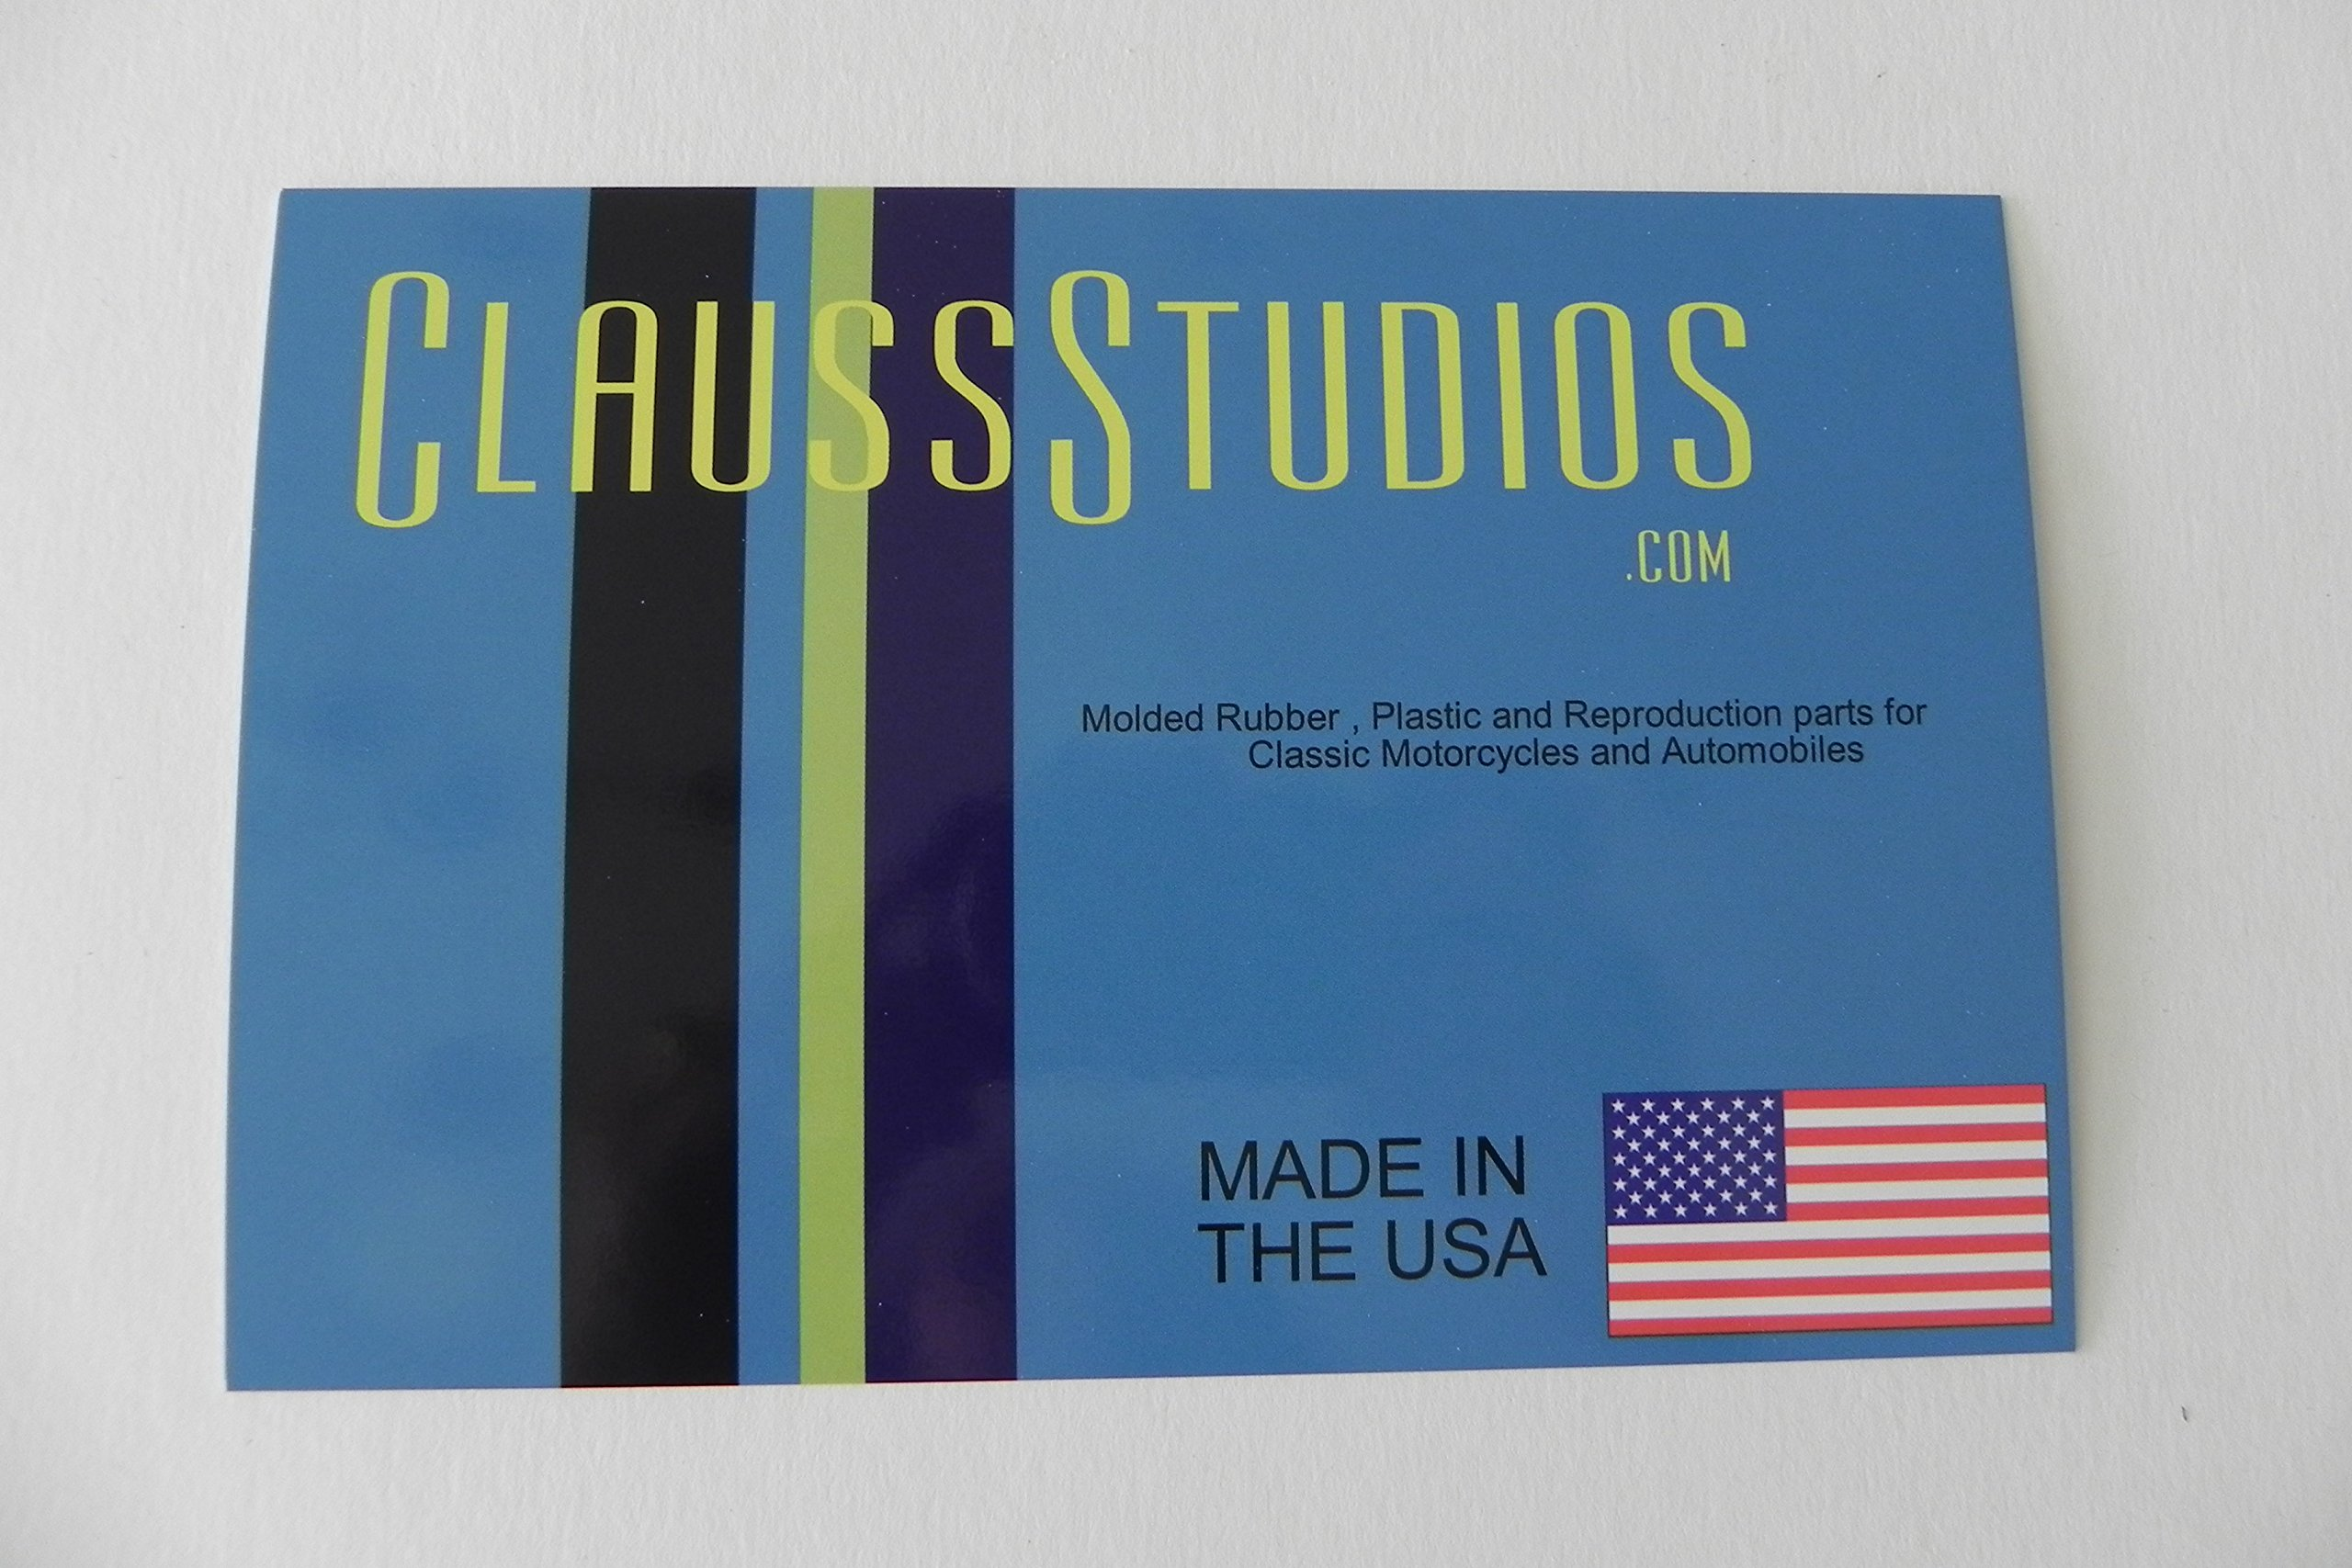 Clauss Studios Porsche 924 944 951 968 1987-95 Oil Cooler Alignment Tool Polyurethane New by Clauss Studios (Image #2)